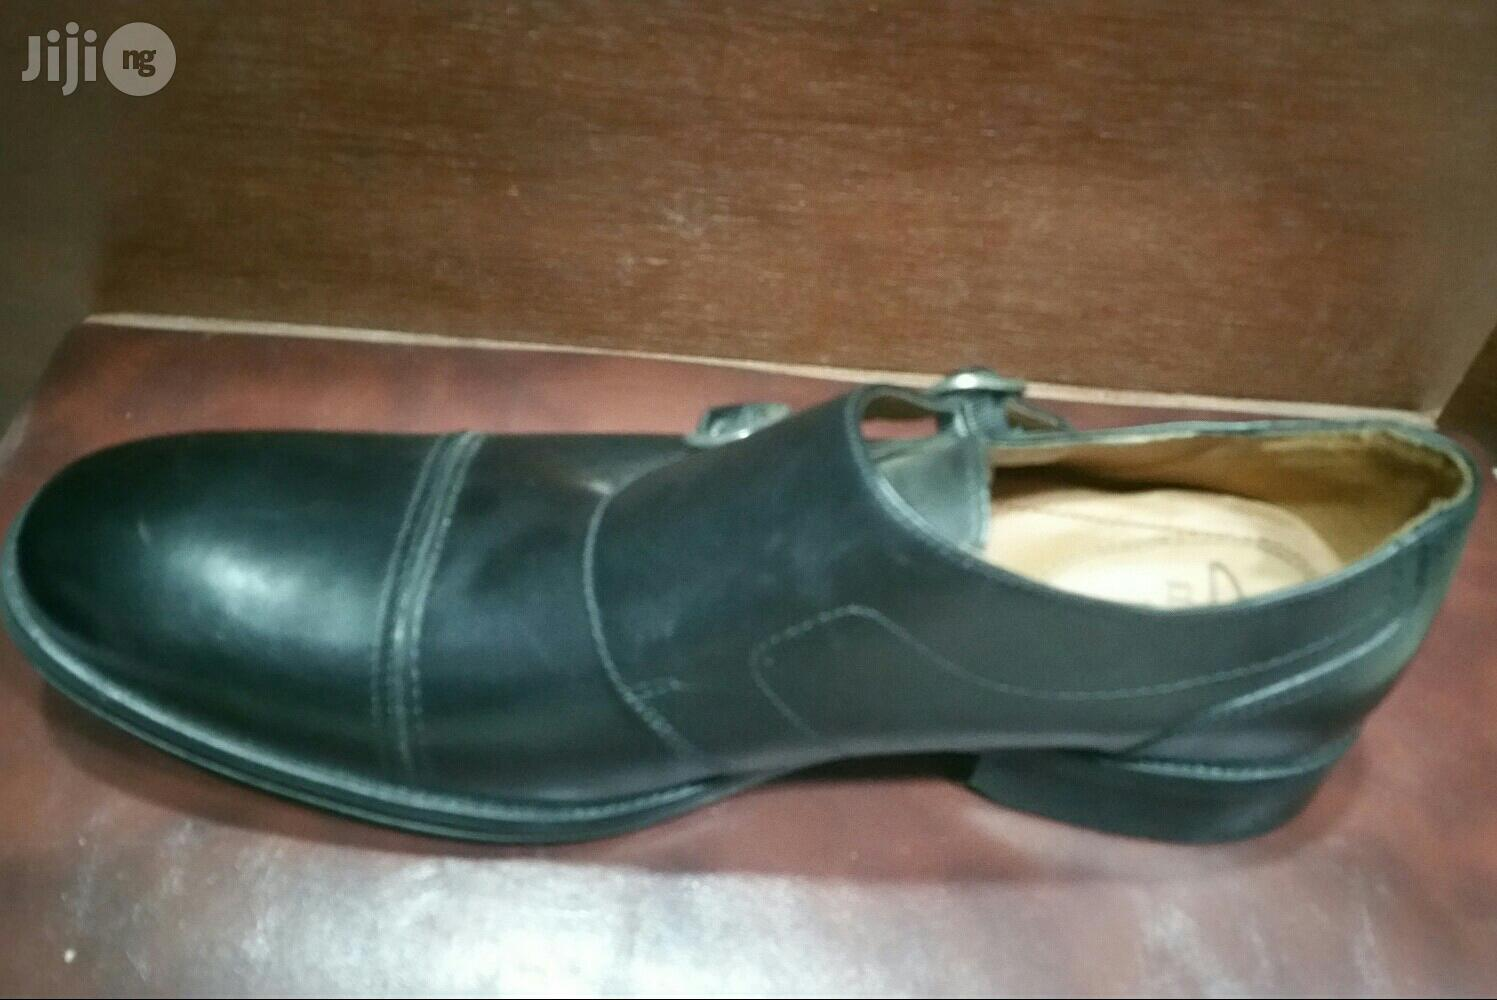 Clarks Men's Formal Shoes - Black | Shoes for sale in Yaba, Lagos State, Nigeria